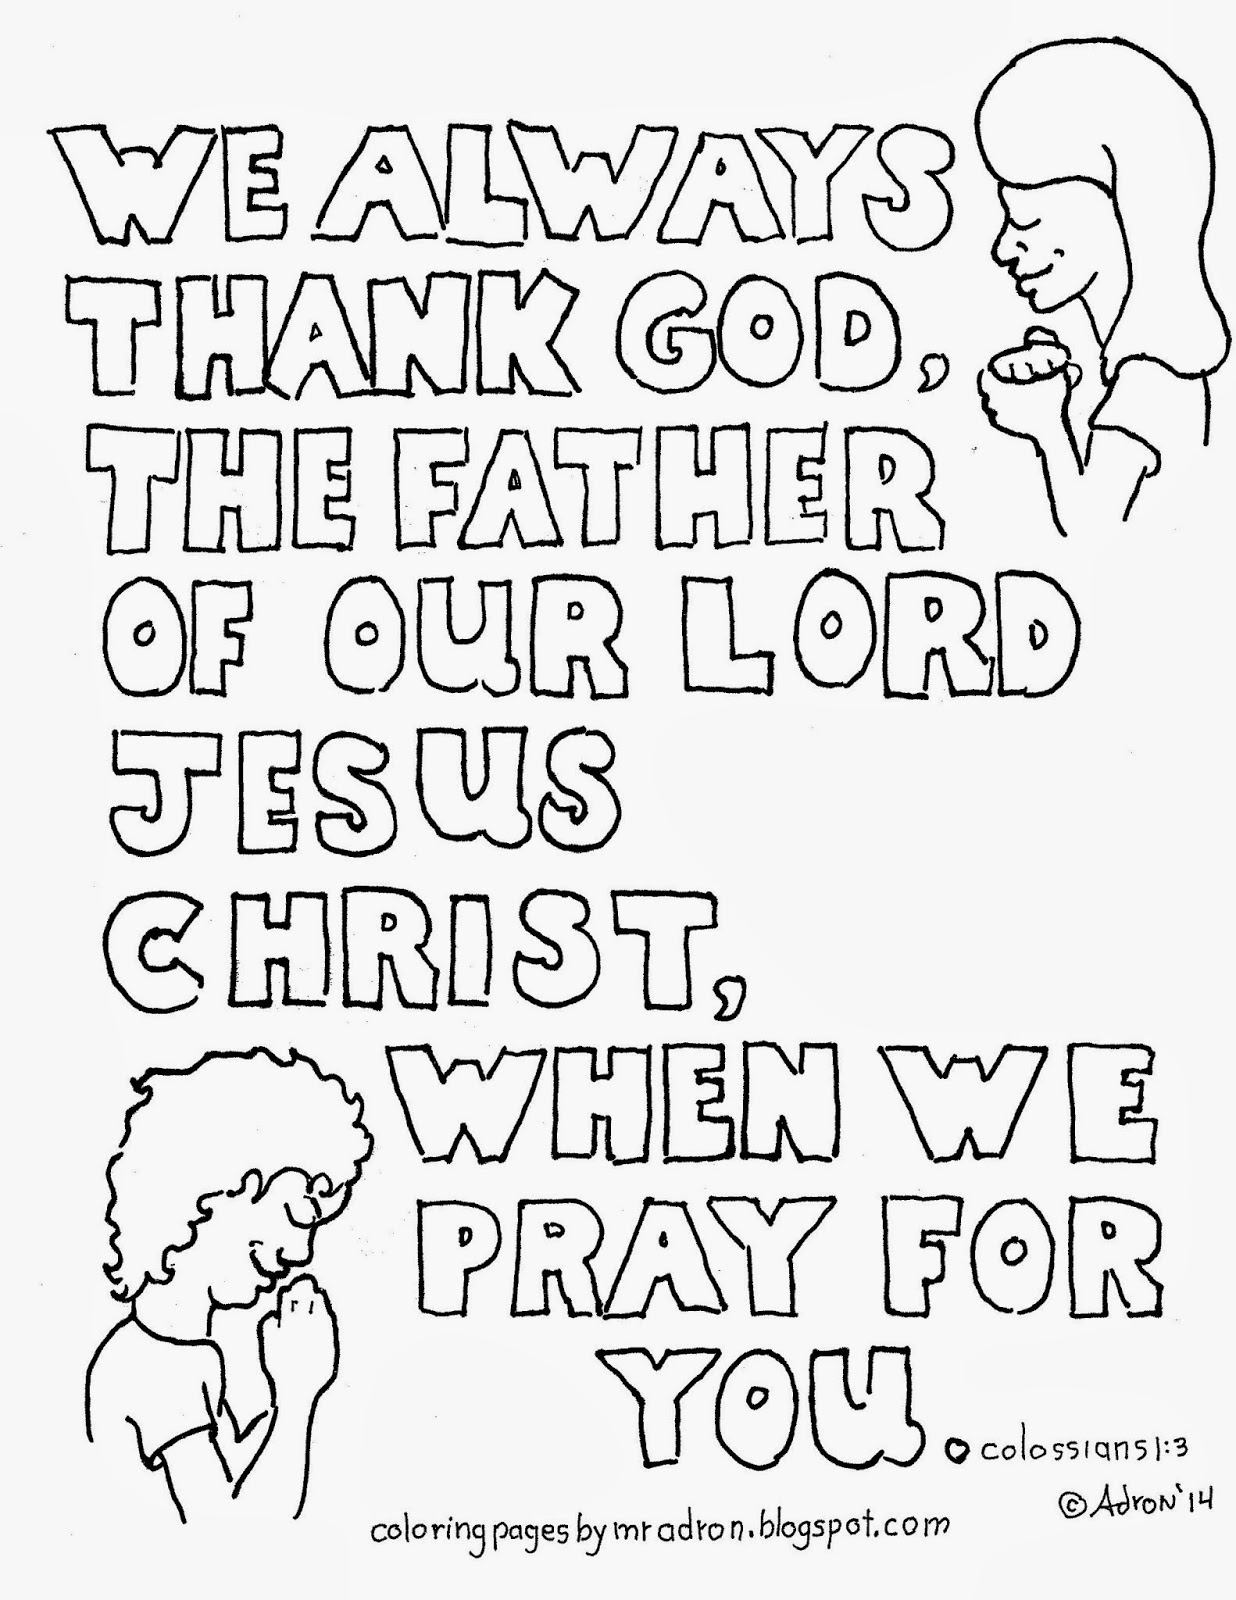 Coloring Pages For Kids By Mr Adron Colossians 1 3 Free